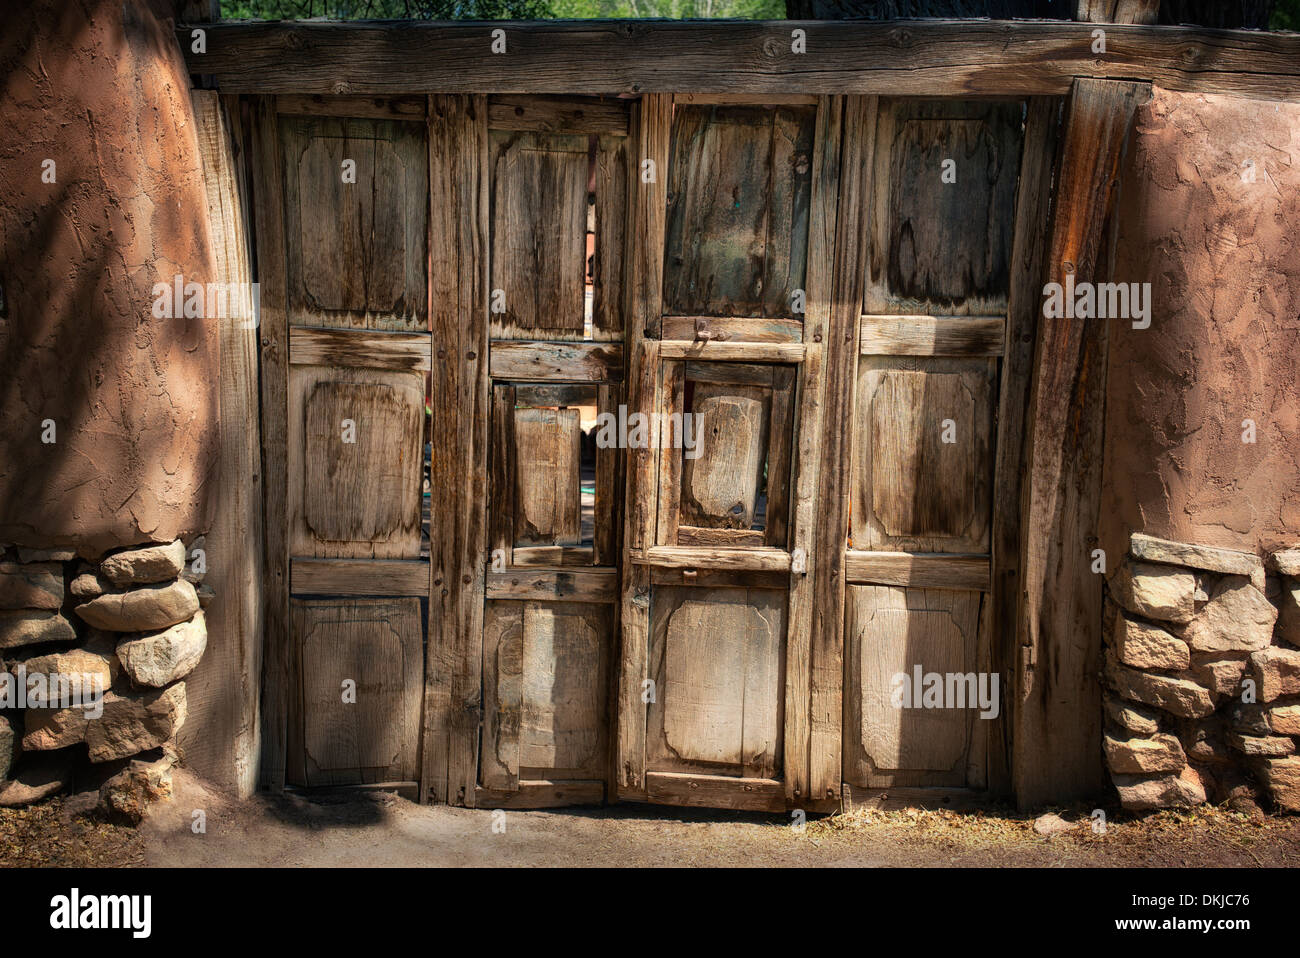 Door to house in Santa Fe, New Mexico - Stock Image